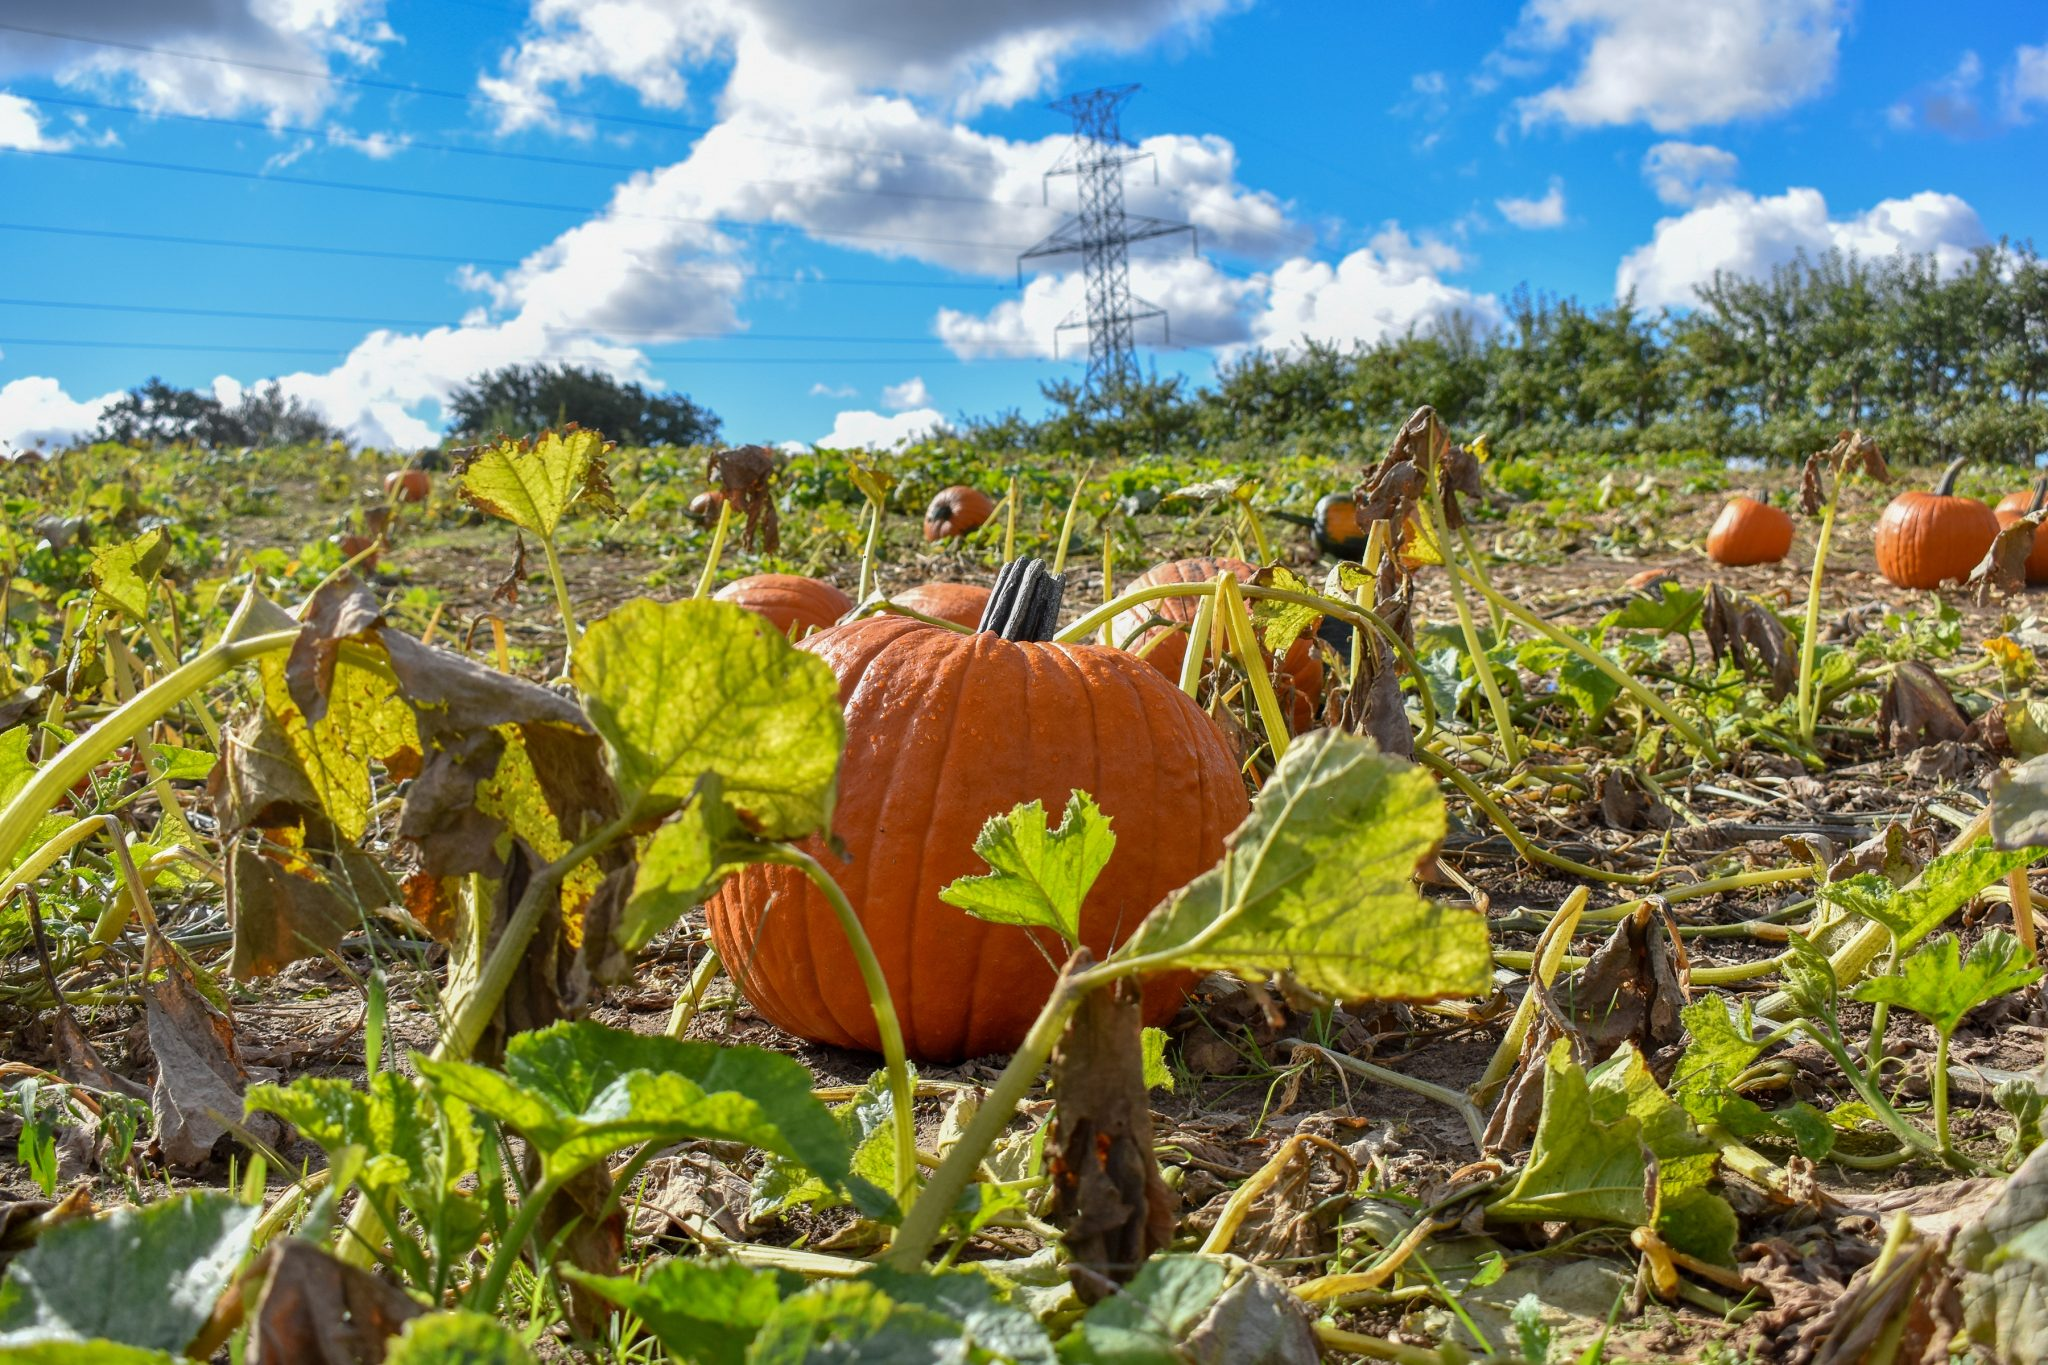 Don't miss out on the ample photo opportunities in the pumpkin patch. Photo by Laura Thorne.